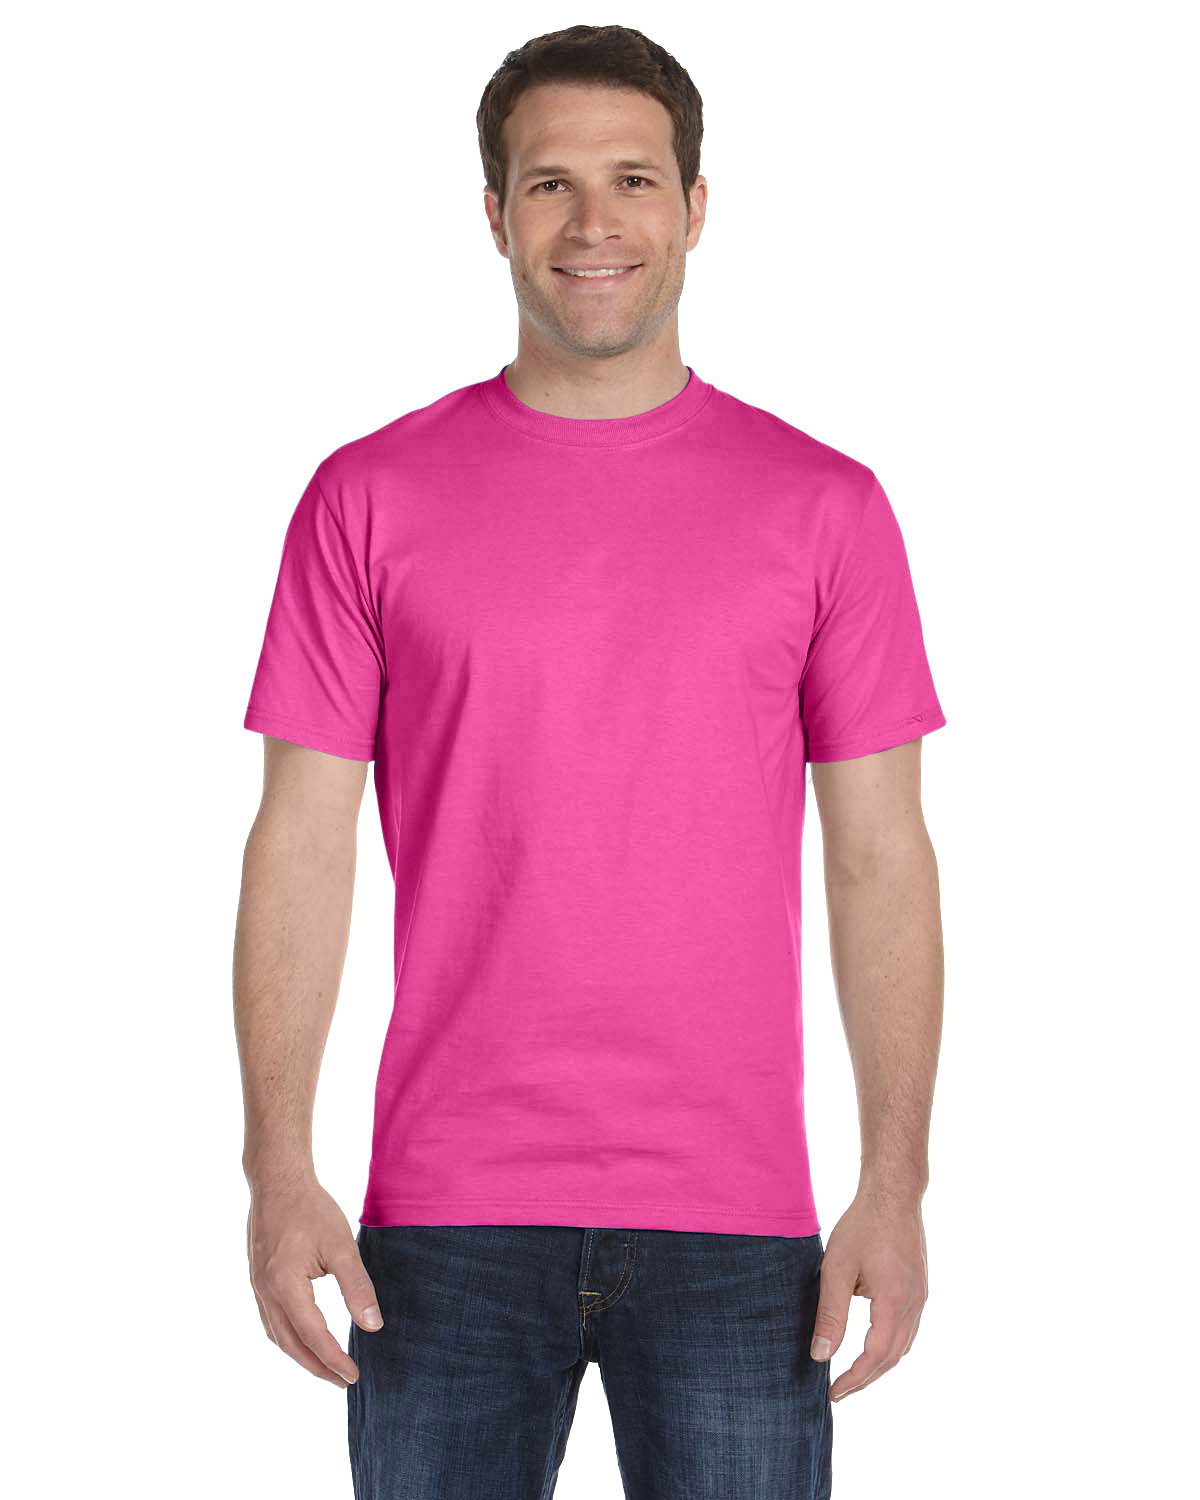 Hanes Unisex Comfortsoft® Cotton T-Shirt WOW PINK